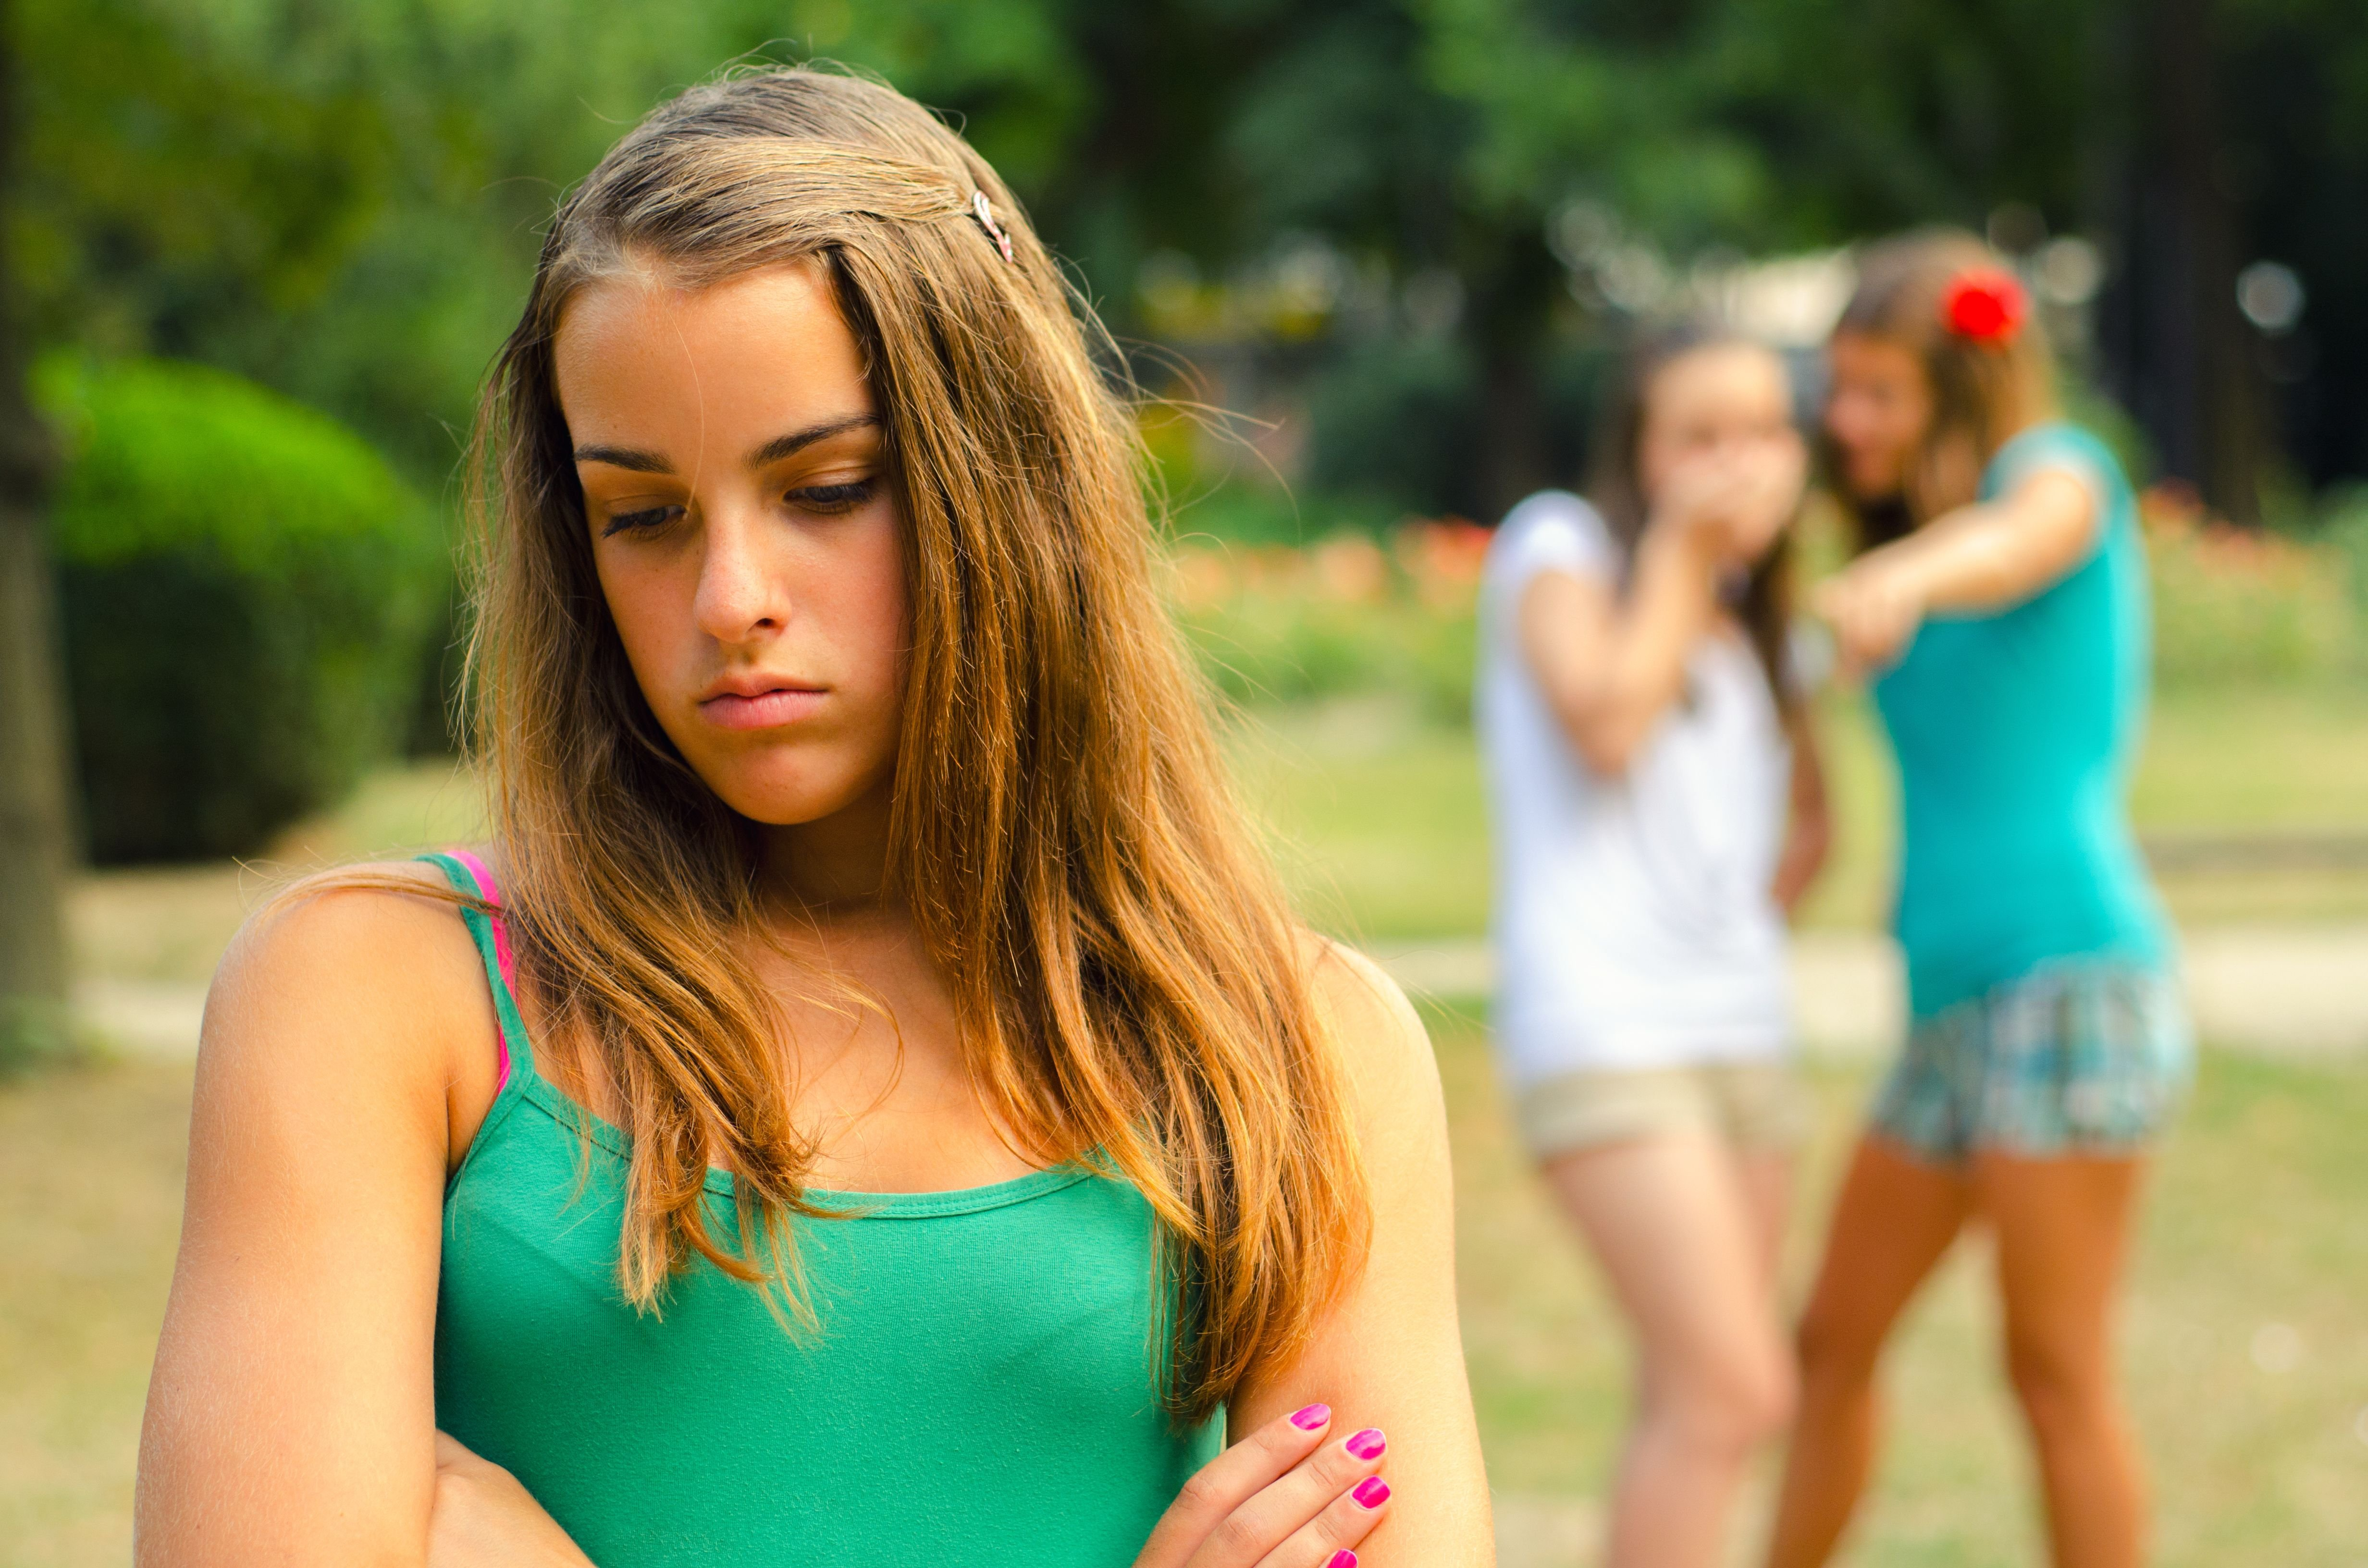 Teen girls pointing at their peers. | Source: Shutterstock